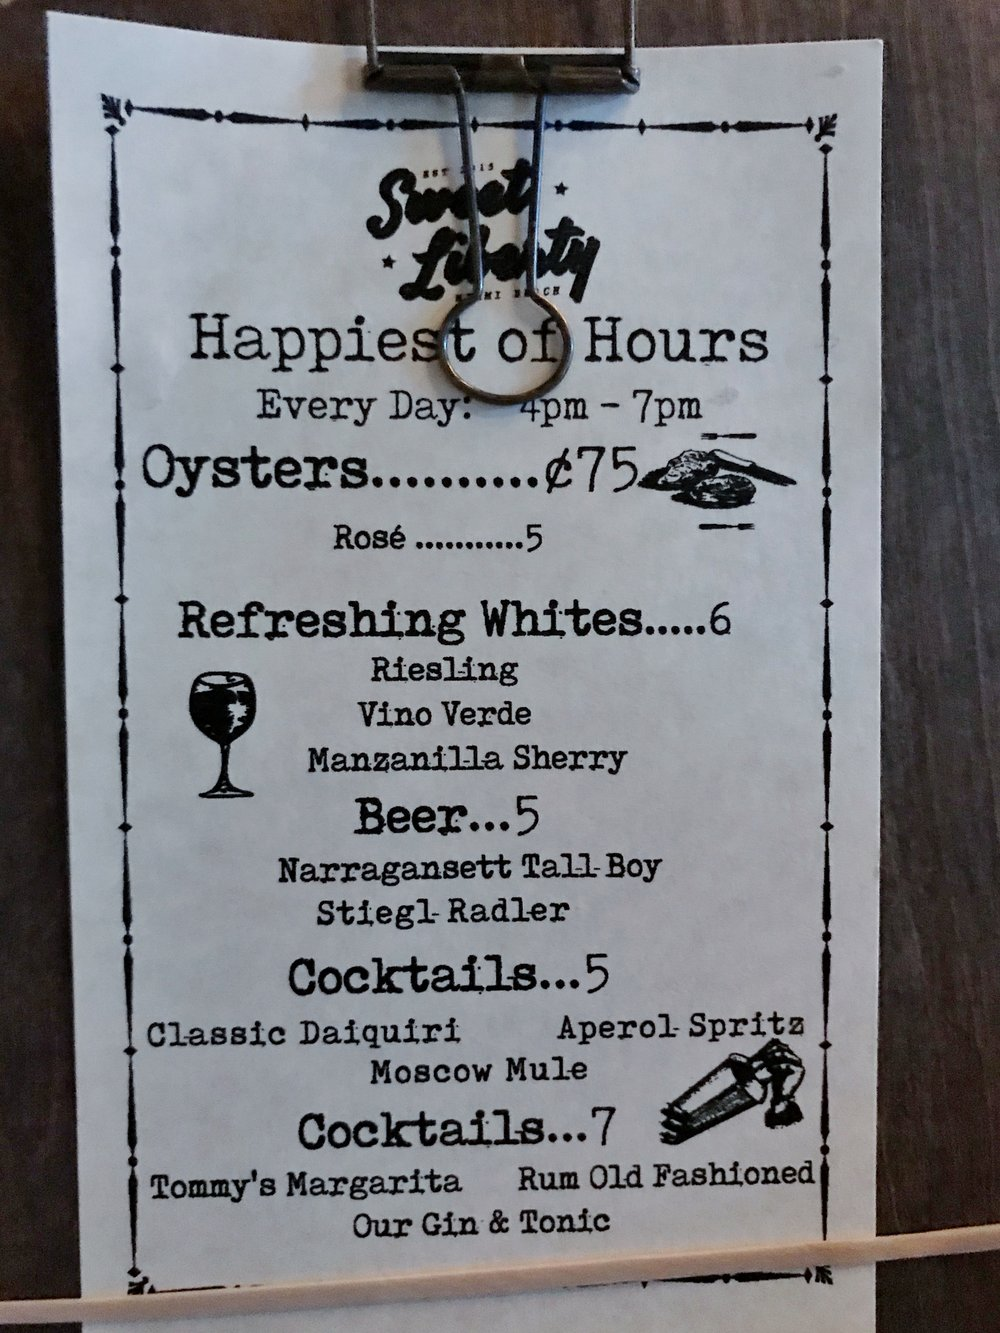 OYSTERS & classic daiquiri on sweet liberty's happy hour menu